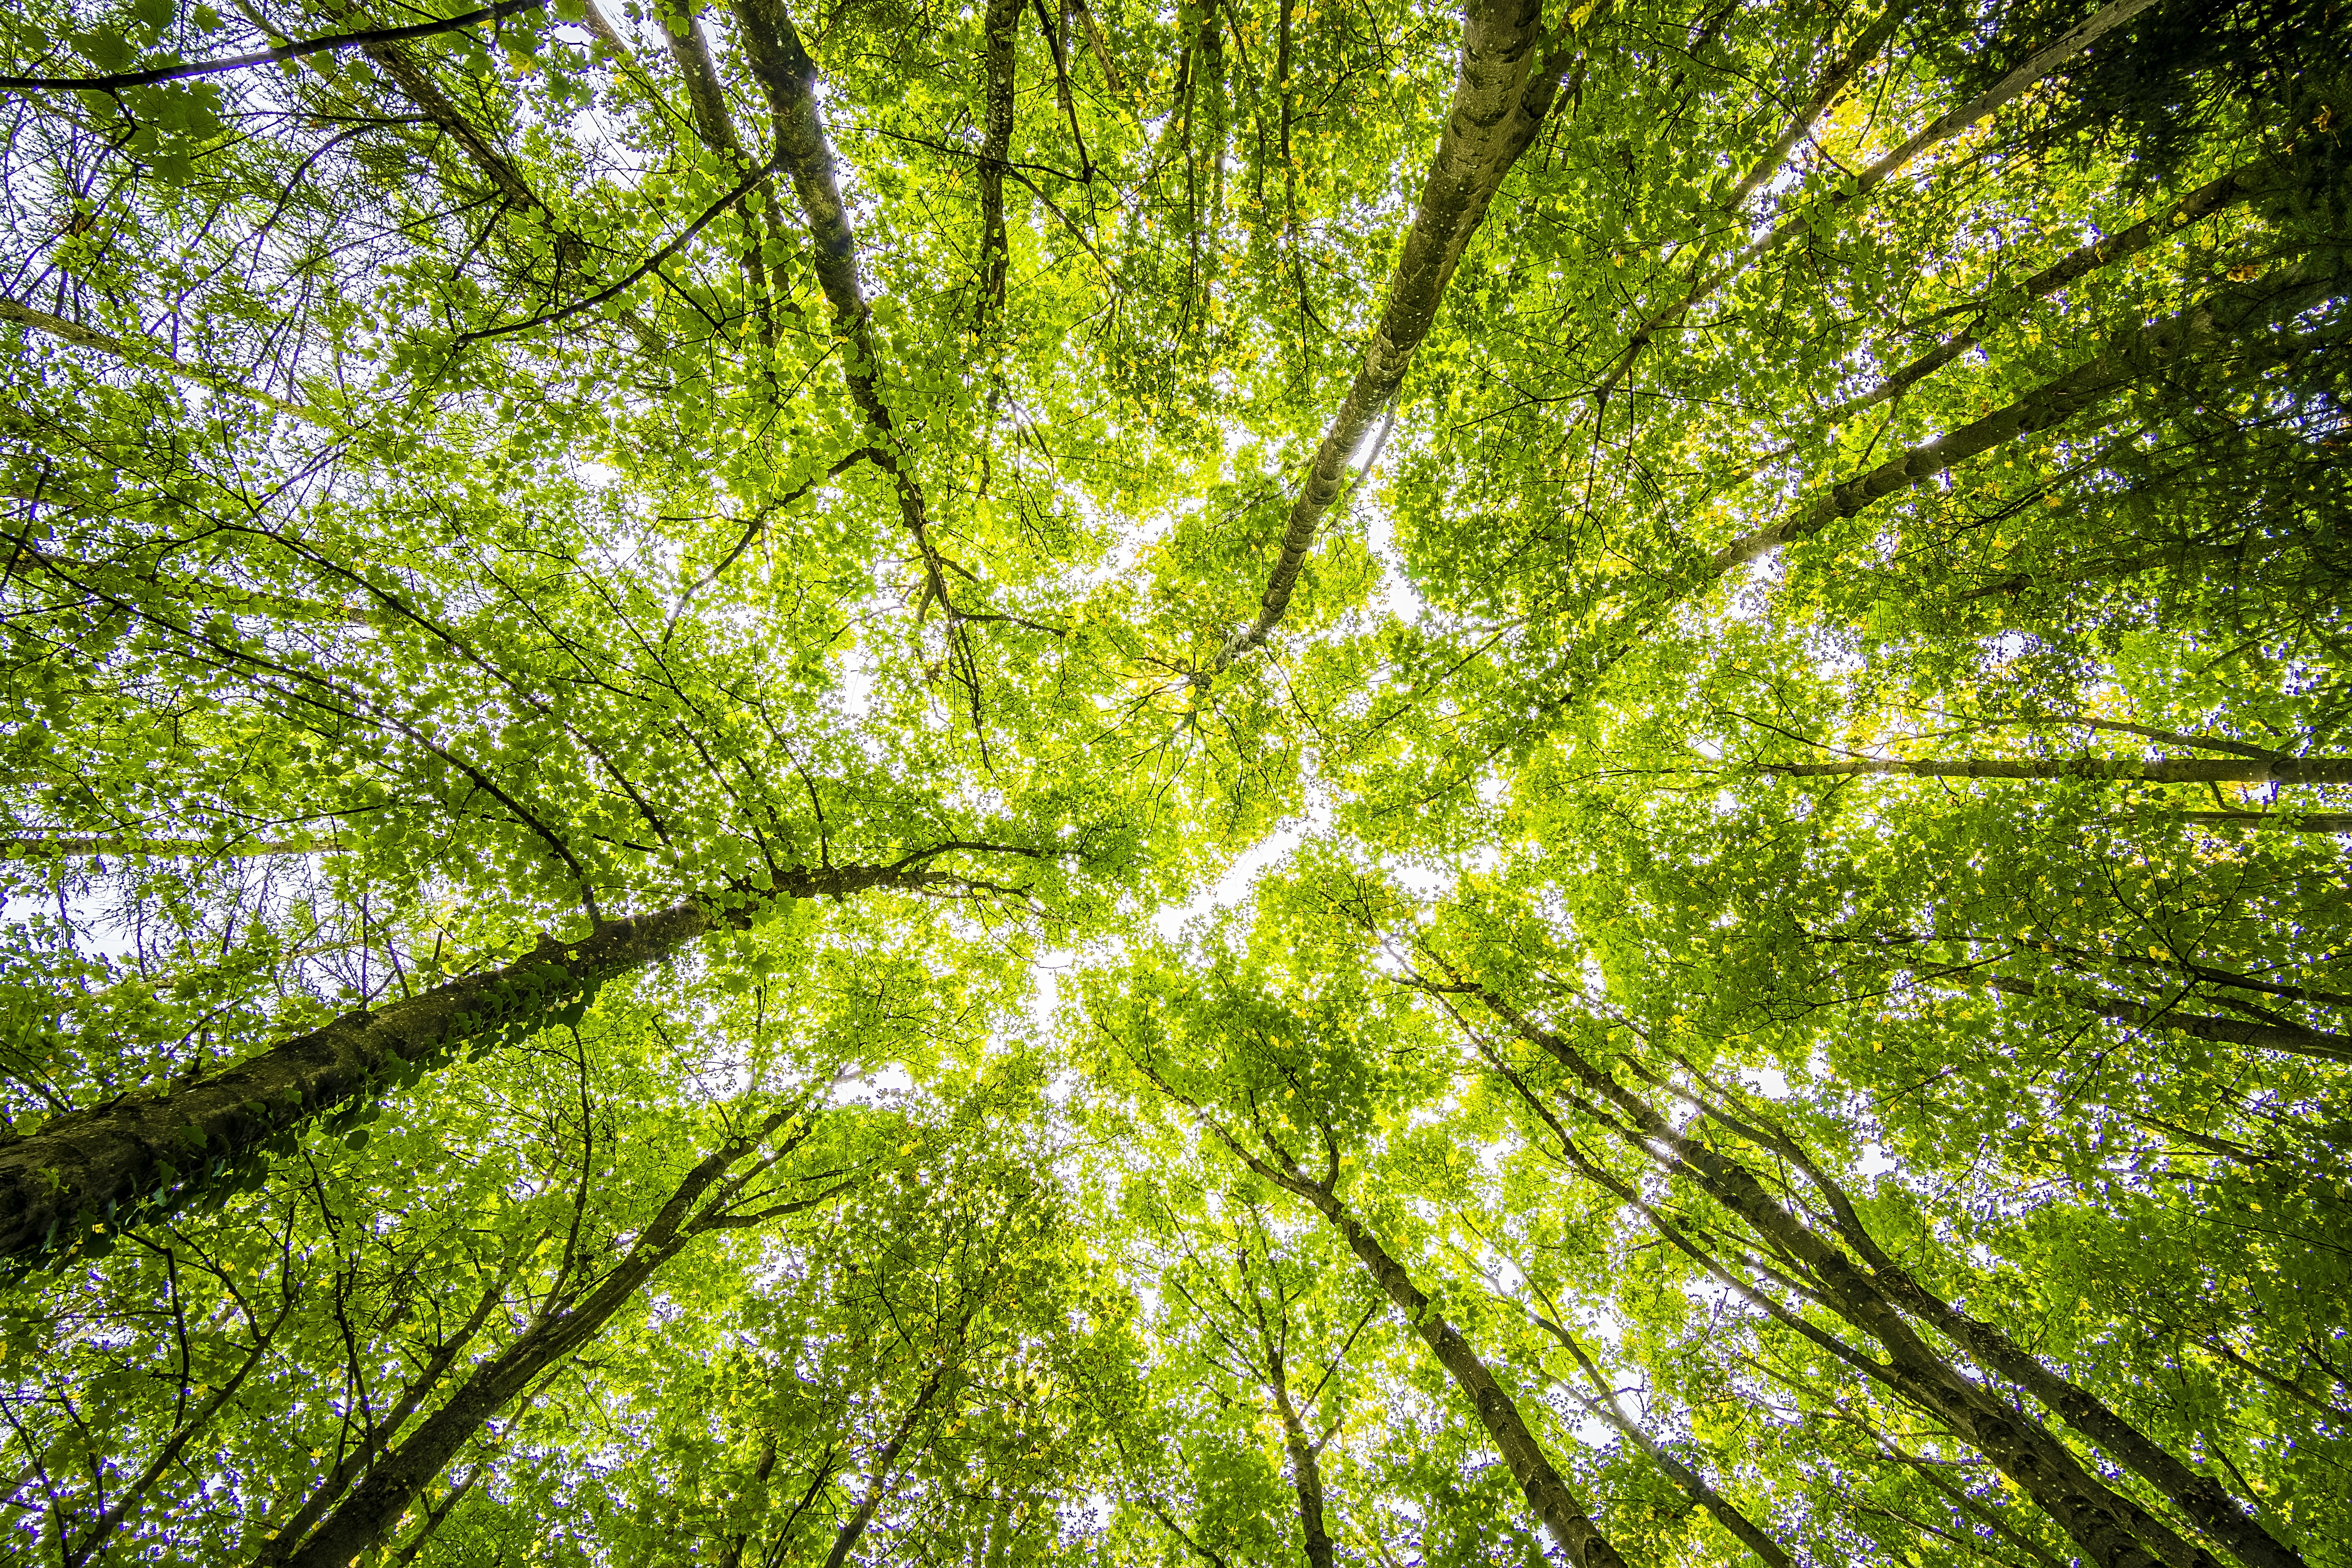 Making it Green: Beyond Material Production